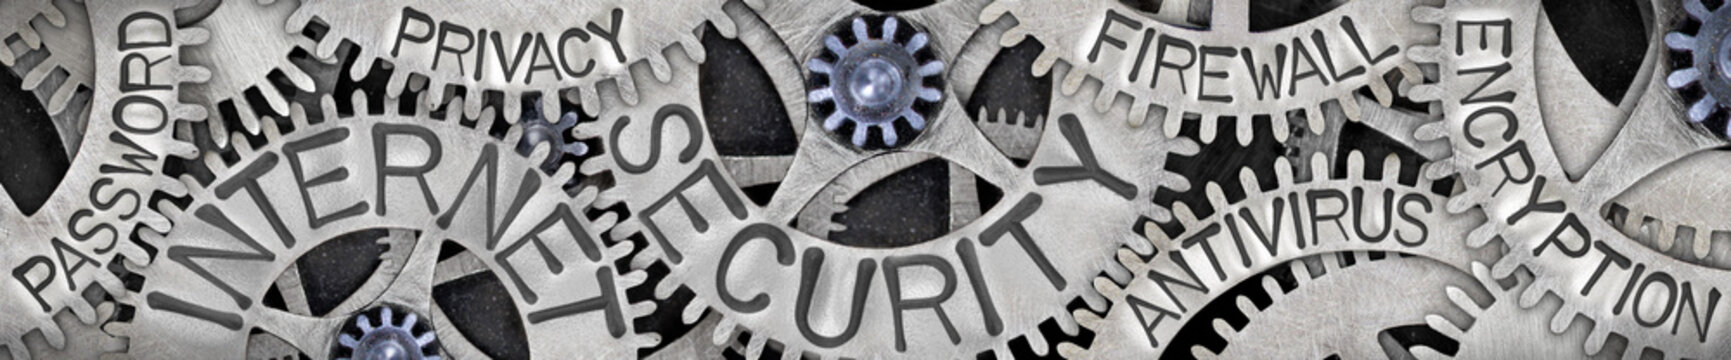 Metal Wheels with Internet Security Concept